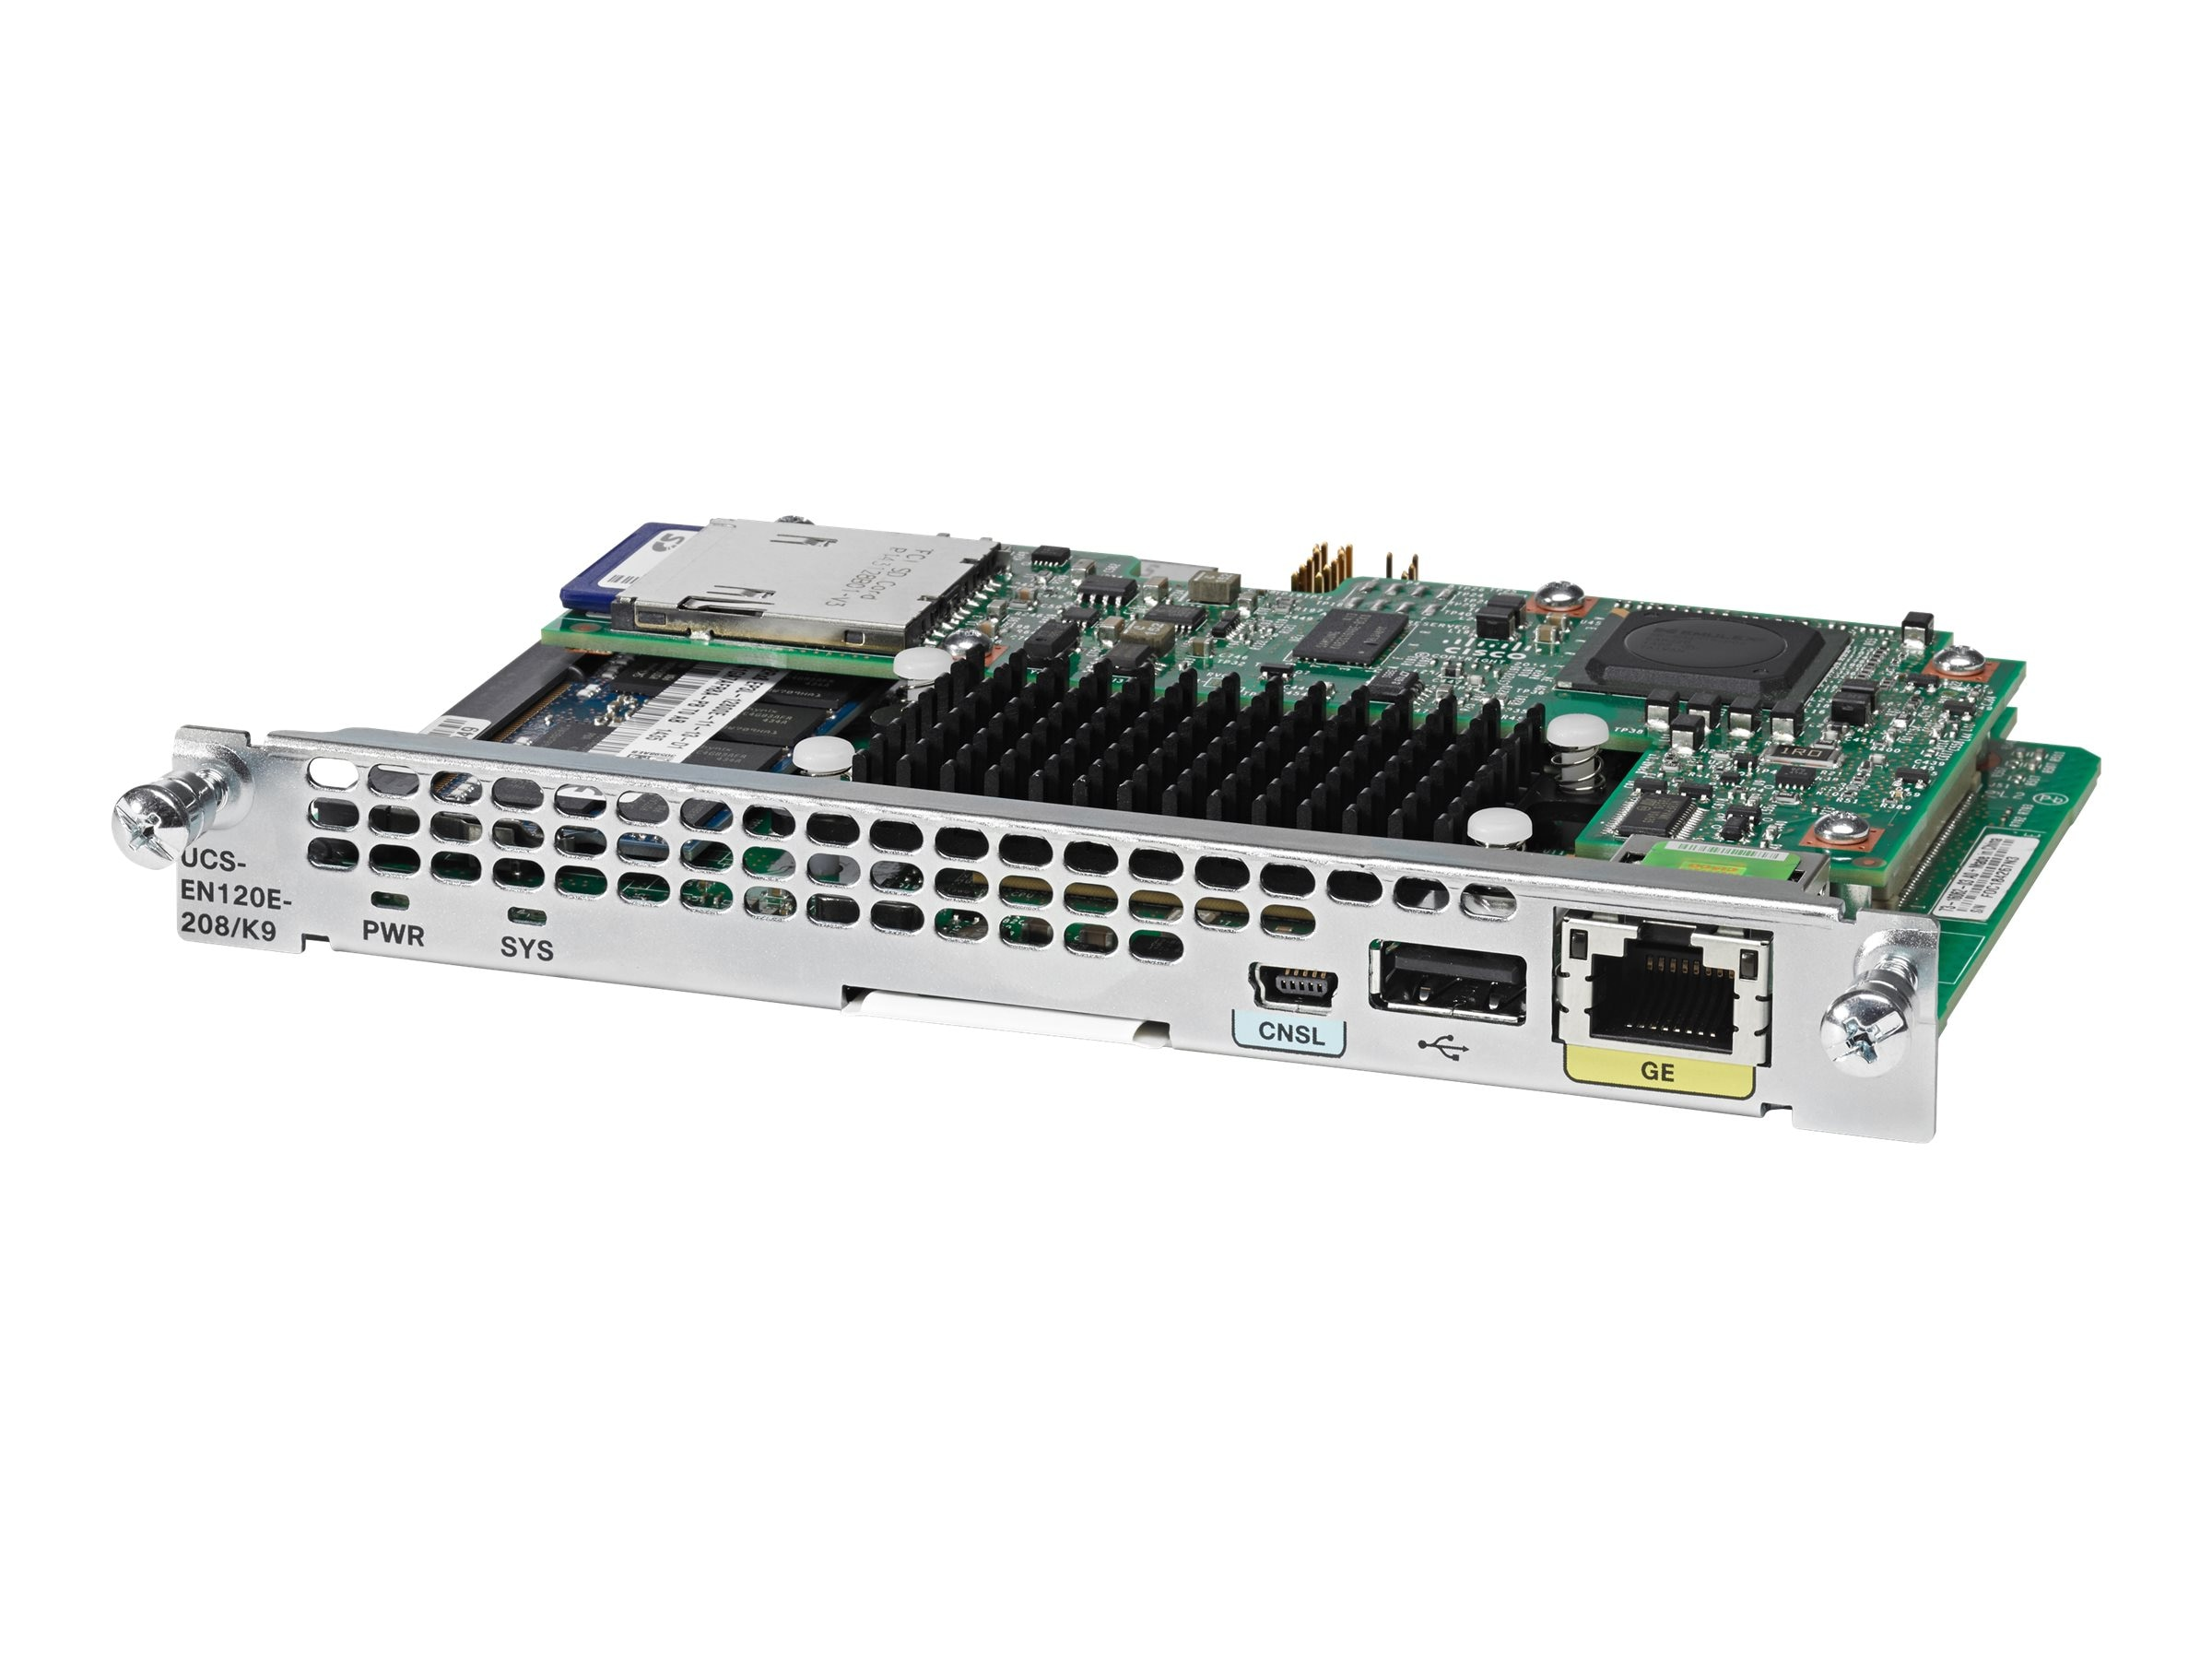 Cisco UCS E-SERIES NCE DW-EHWIC 2C RANGELEY 8G, UCS-EN120E-58/K9=, 31889359, Wireless Adapters & NICs